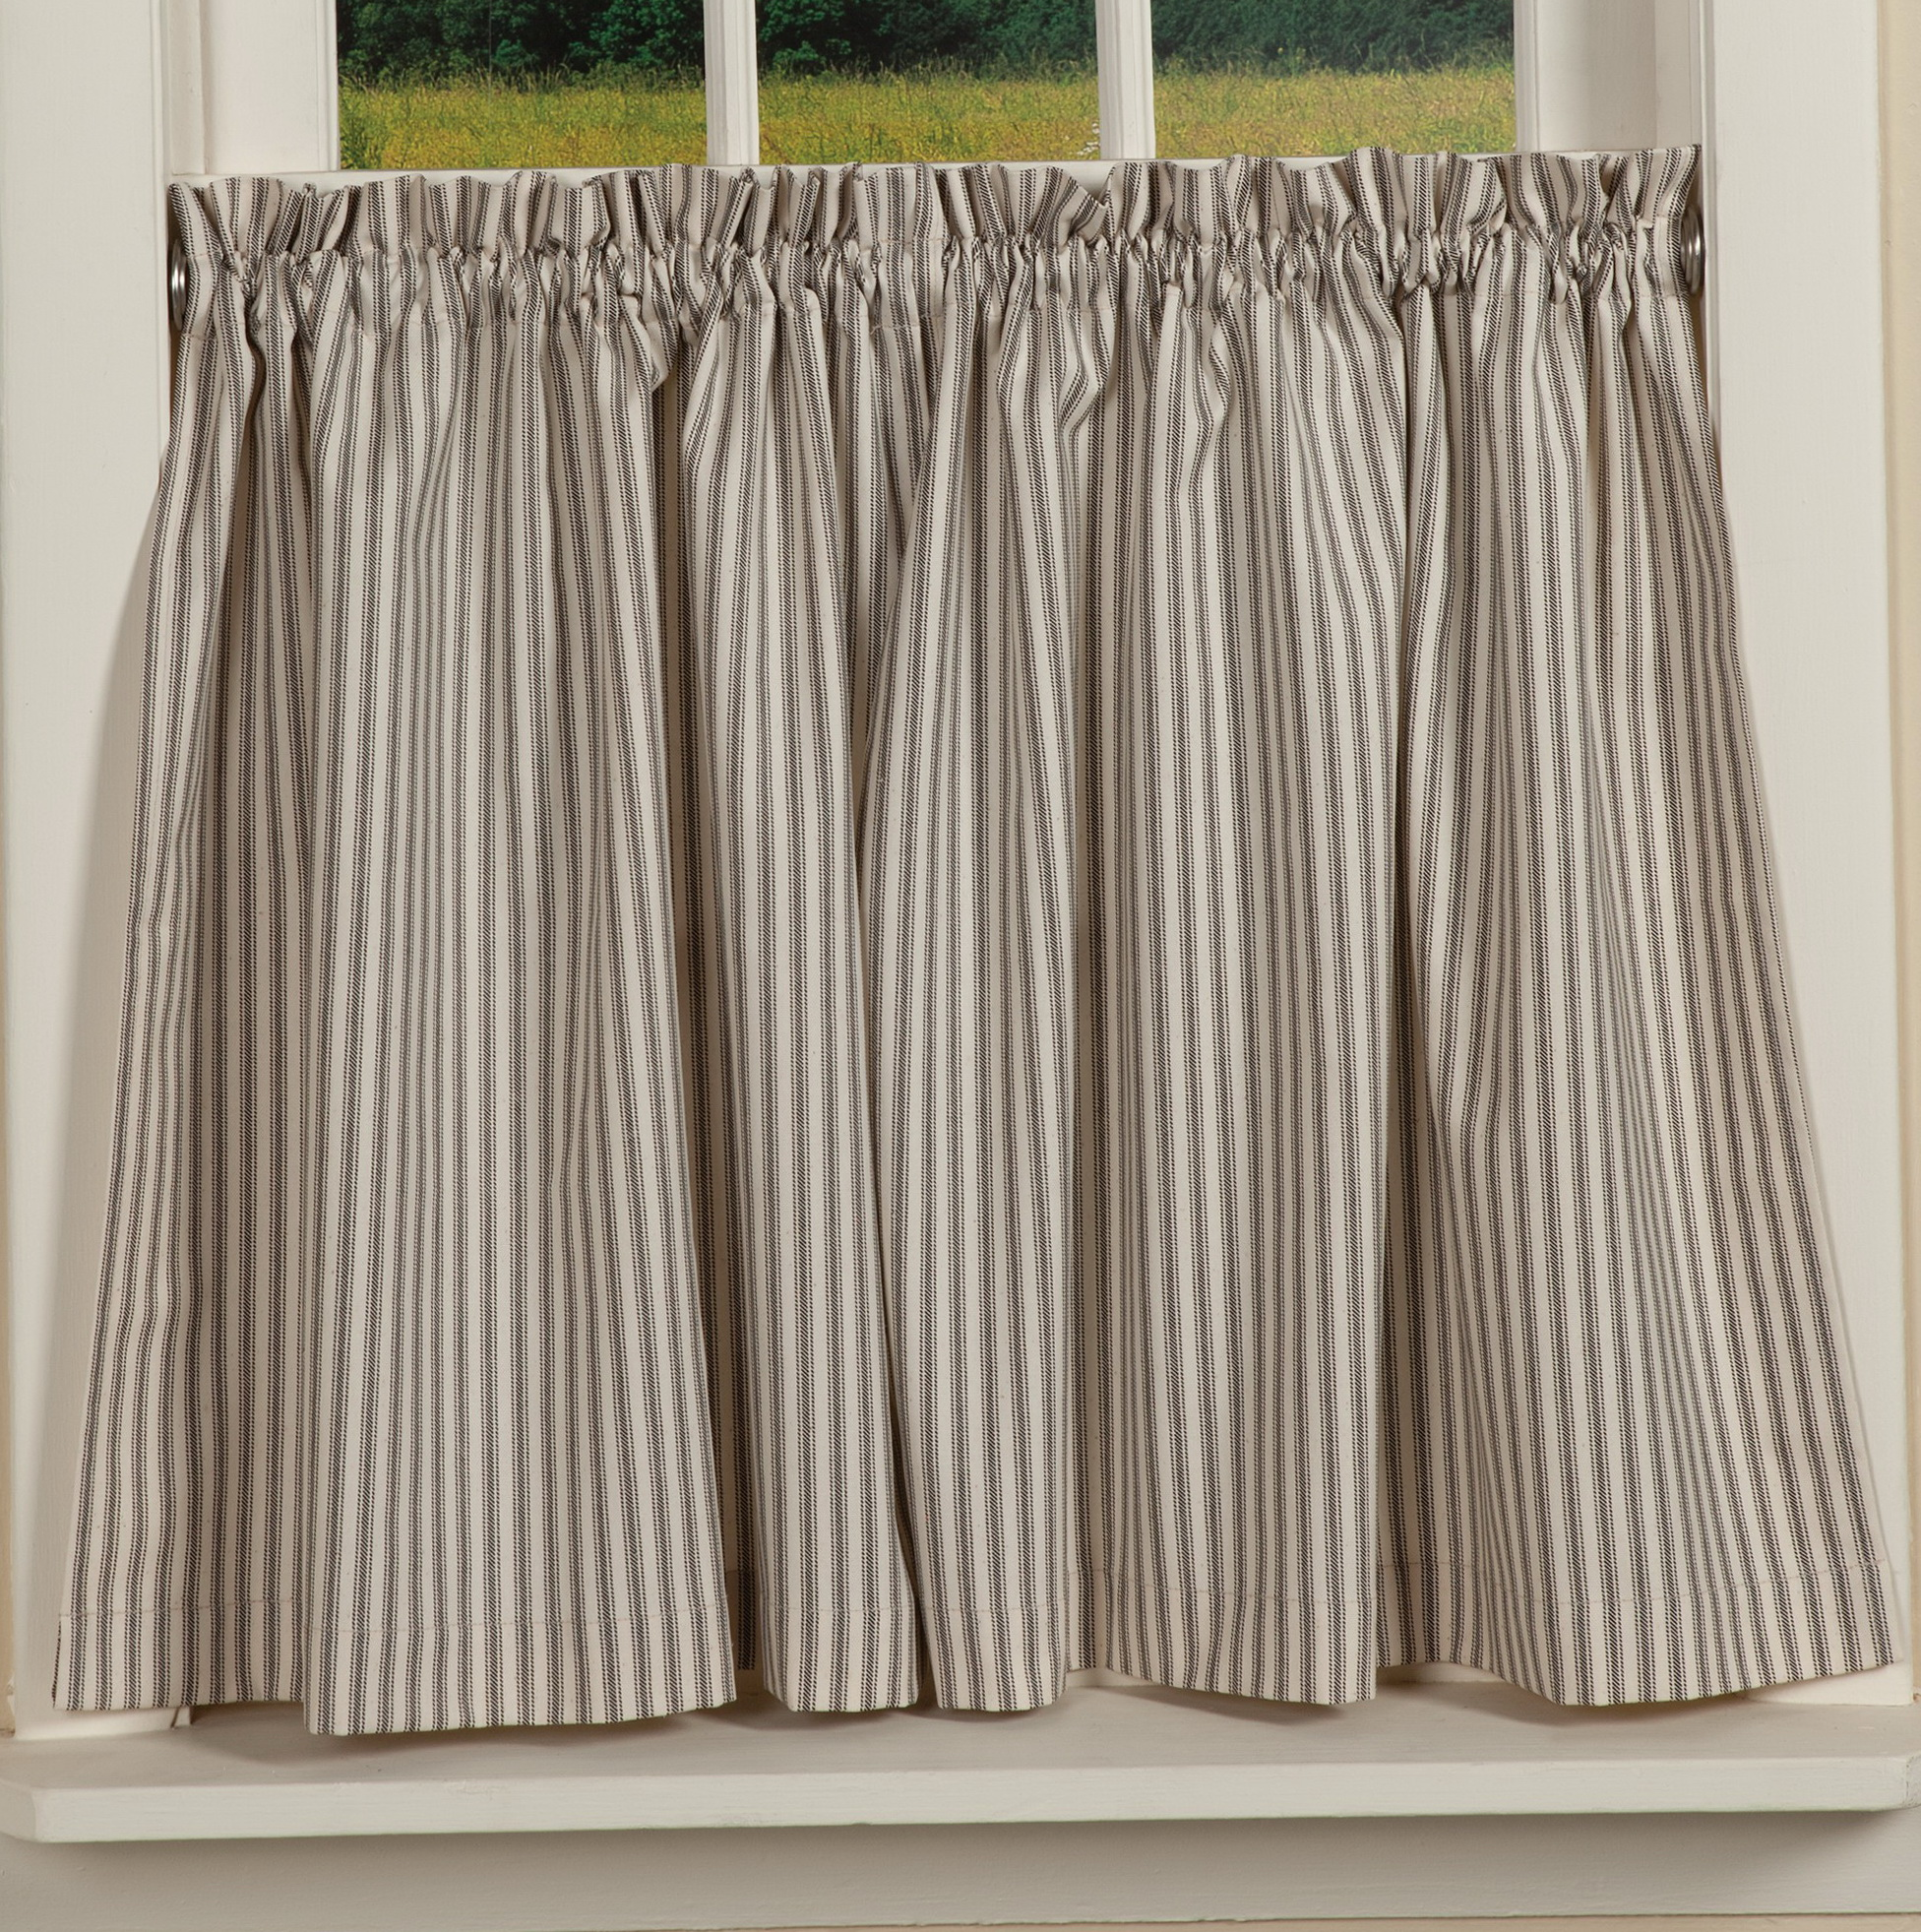 Promo Code Country Curtains Www Looksisquare Com